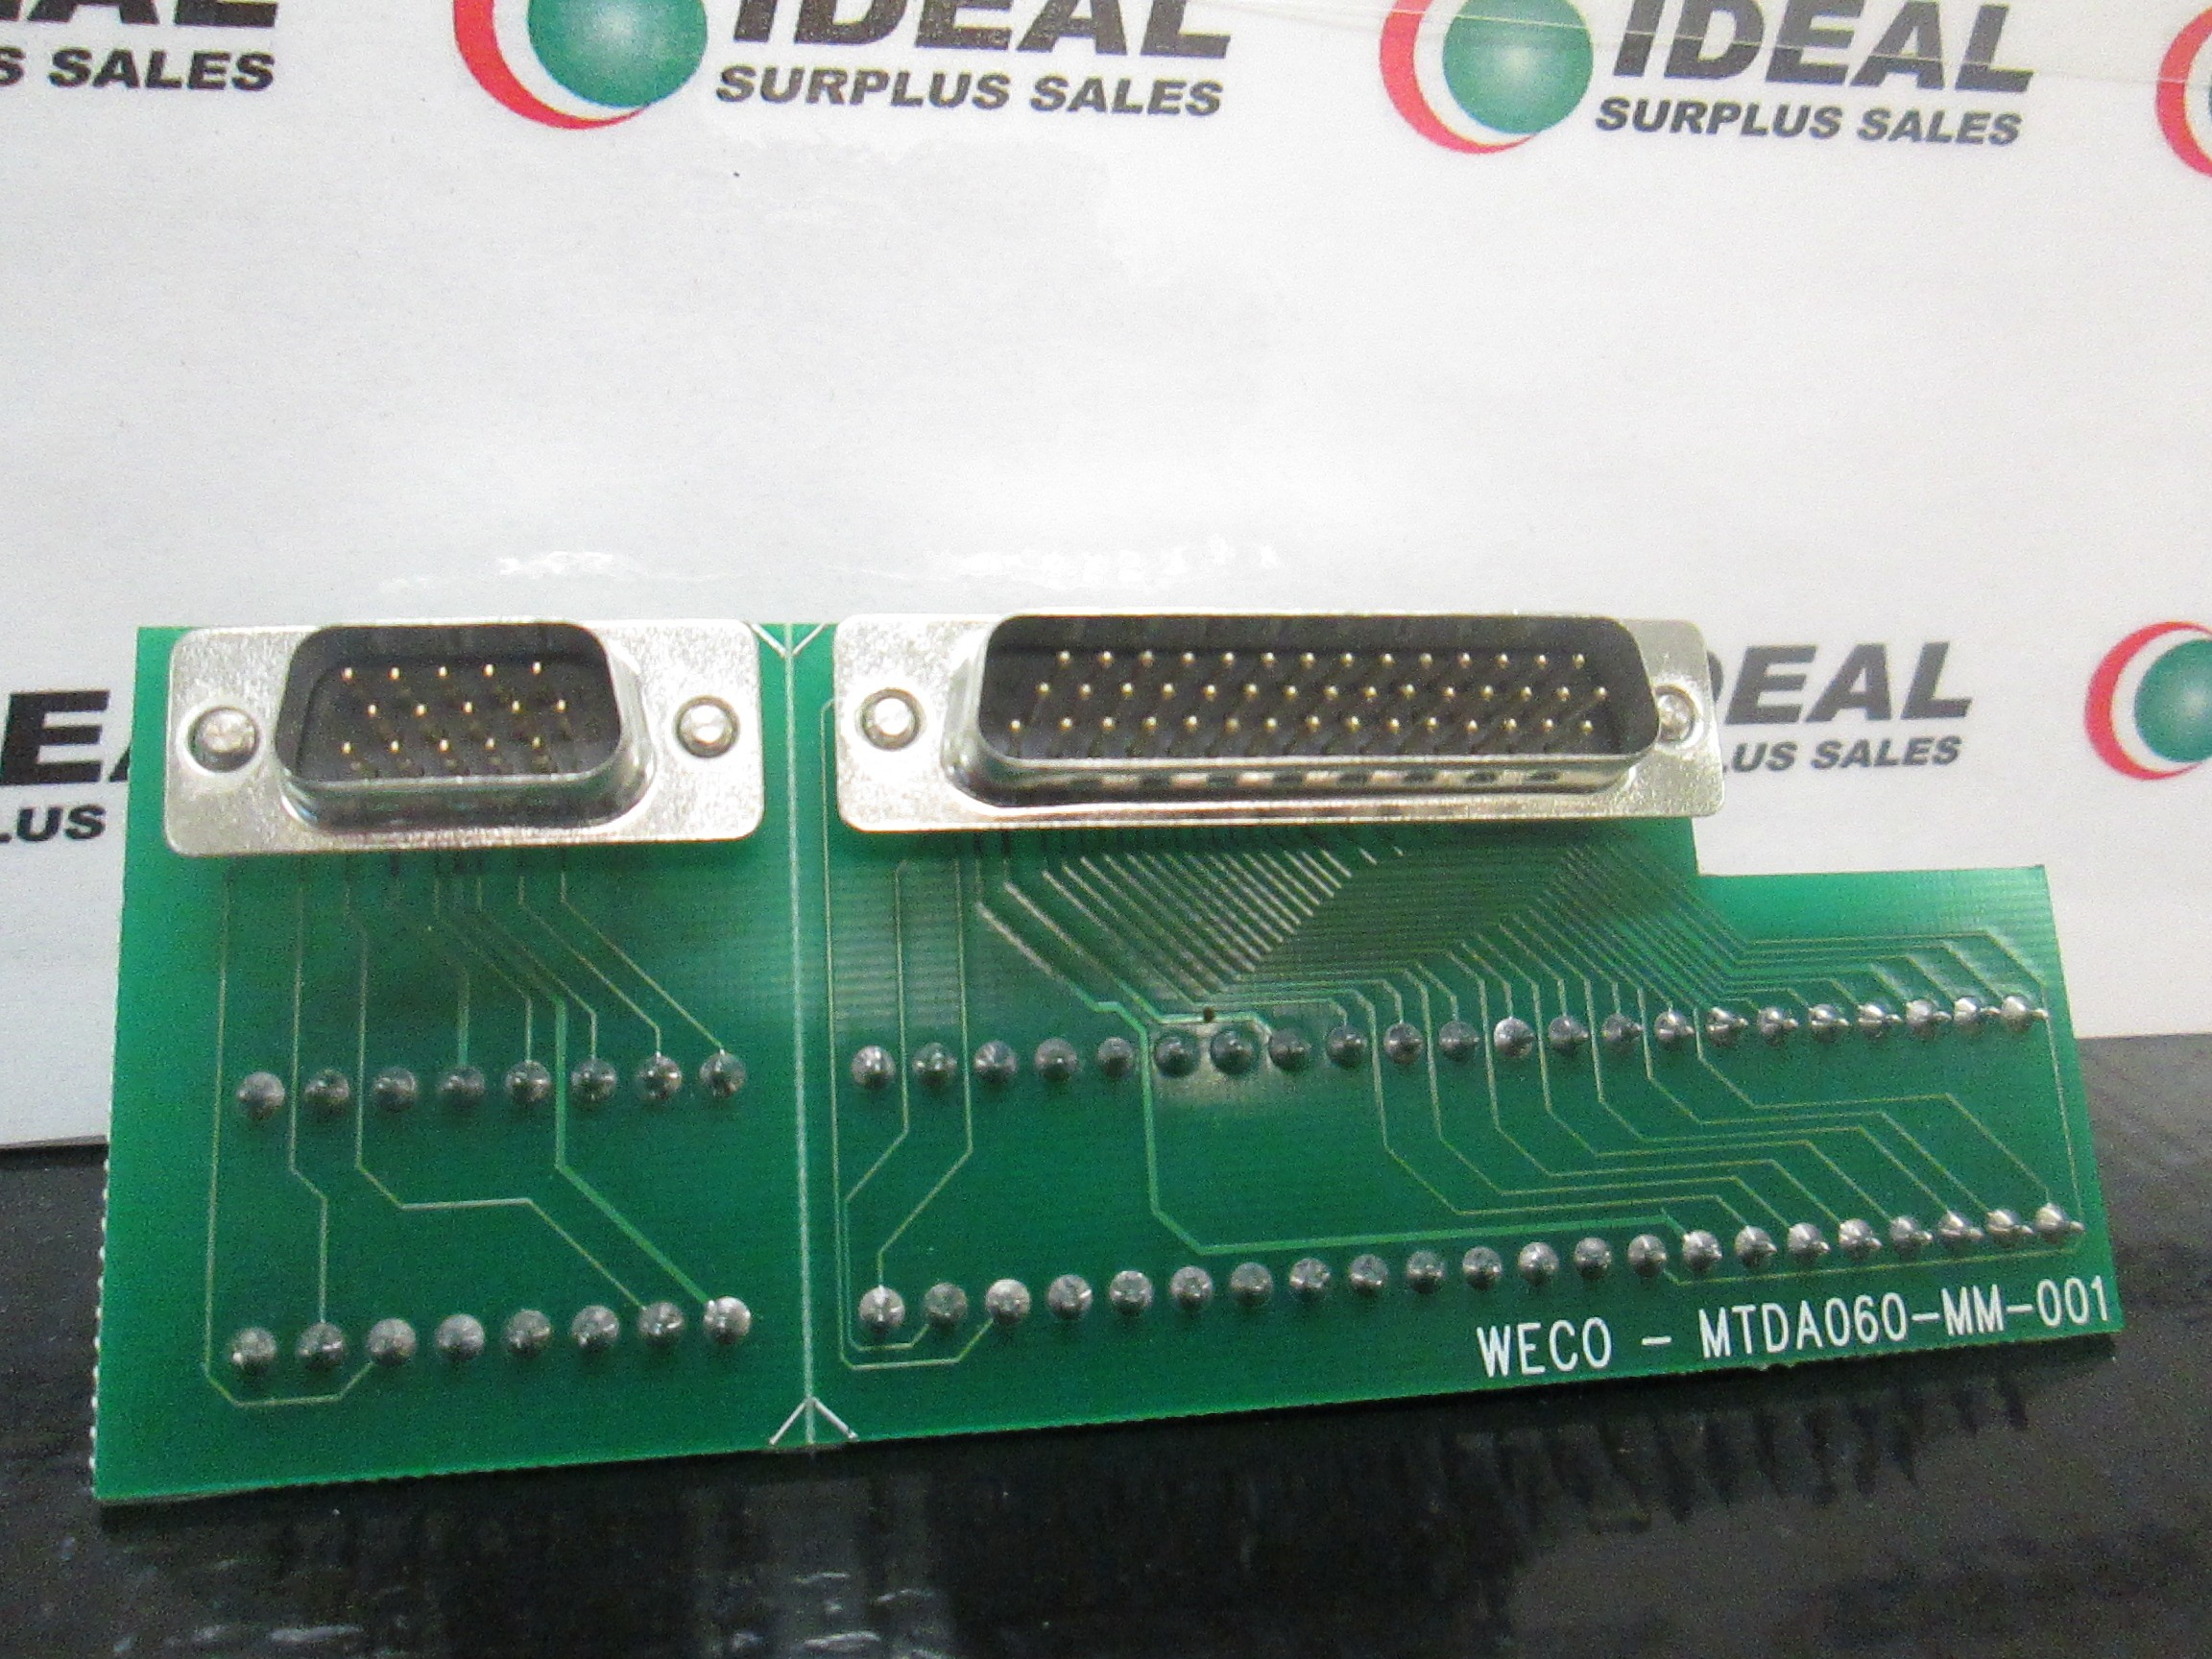 Weco Mtda060 Mm 001 Module Ideal Surplus Electrical Products See Other